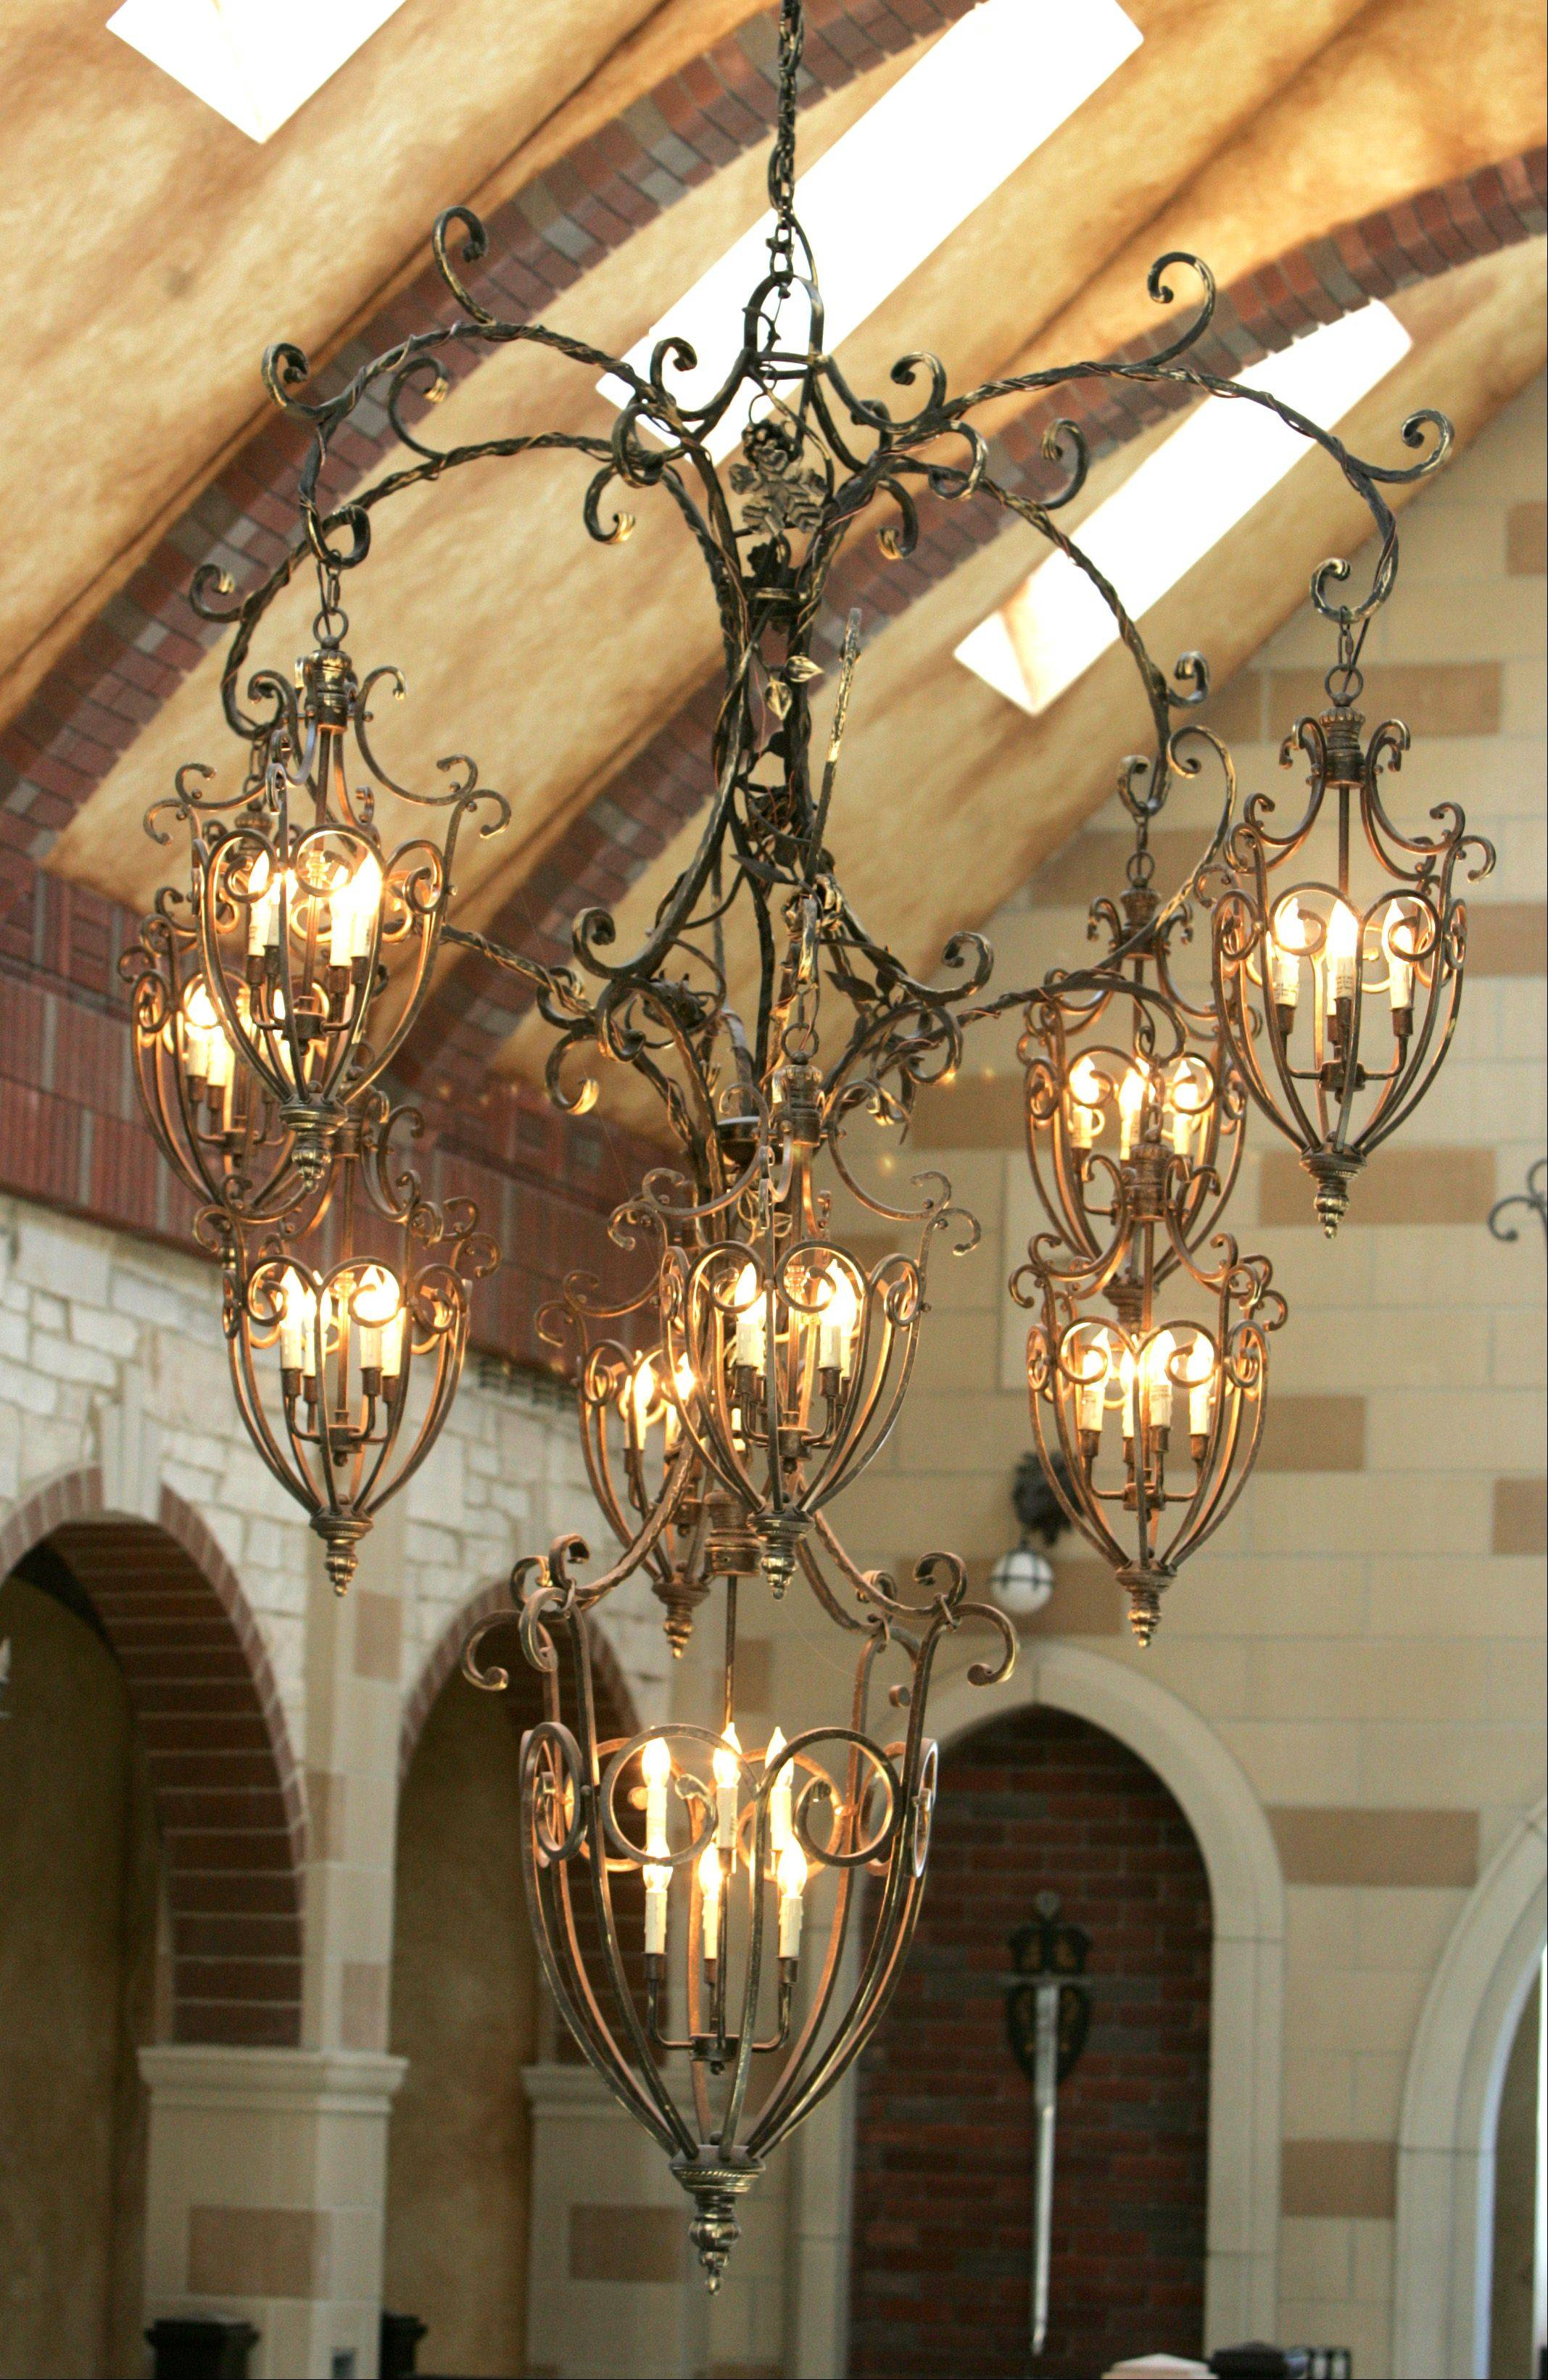 A handmade chandelier is one of many lavish features in the Oak Brook castle.